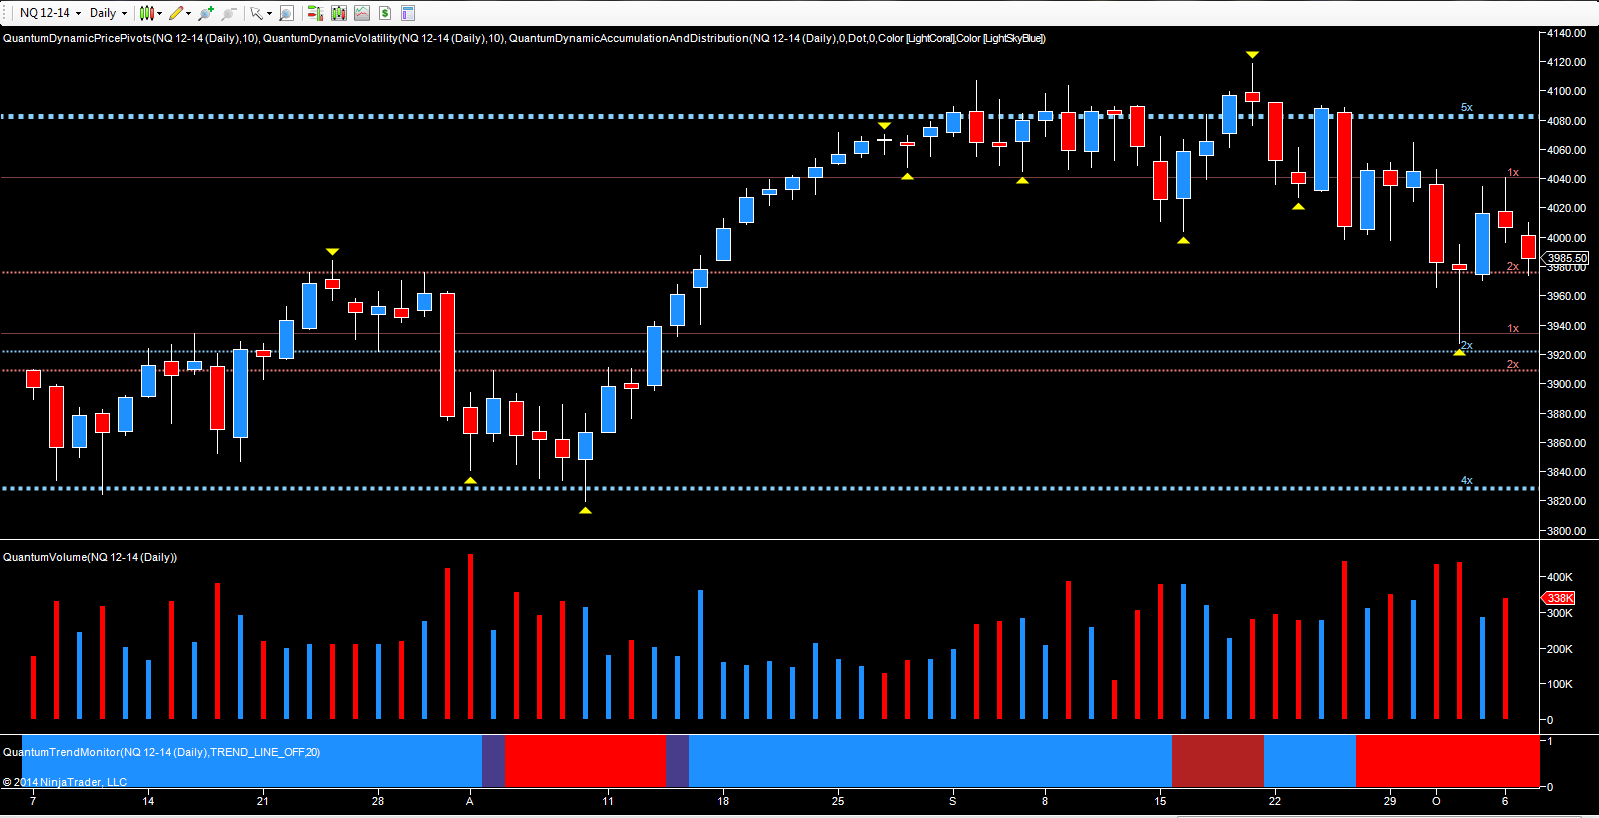 NQ E-mini daily chart